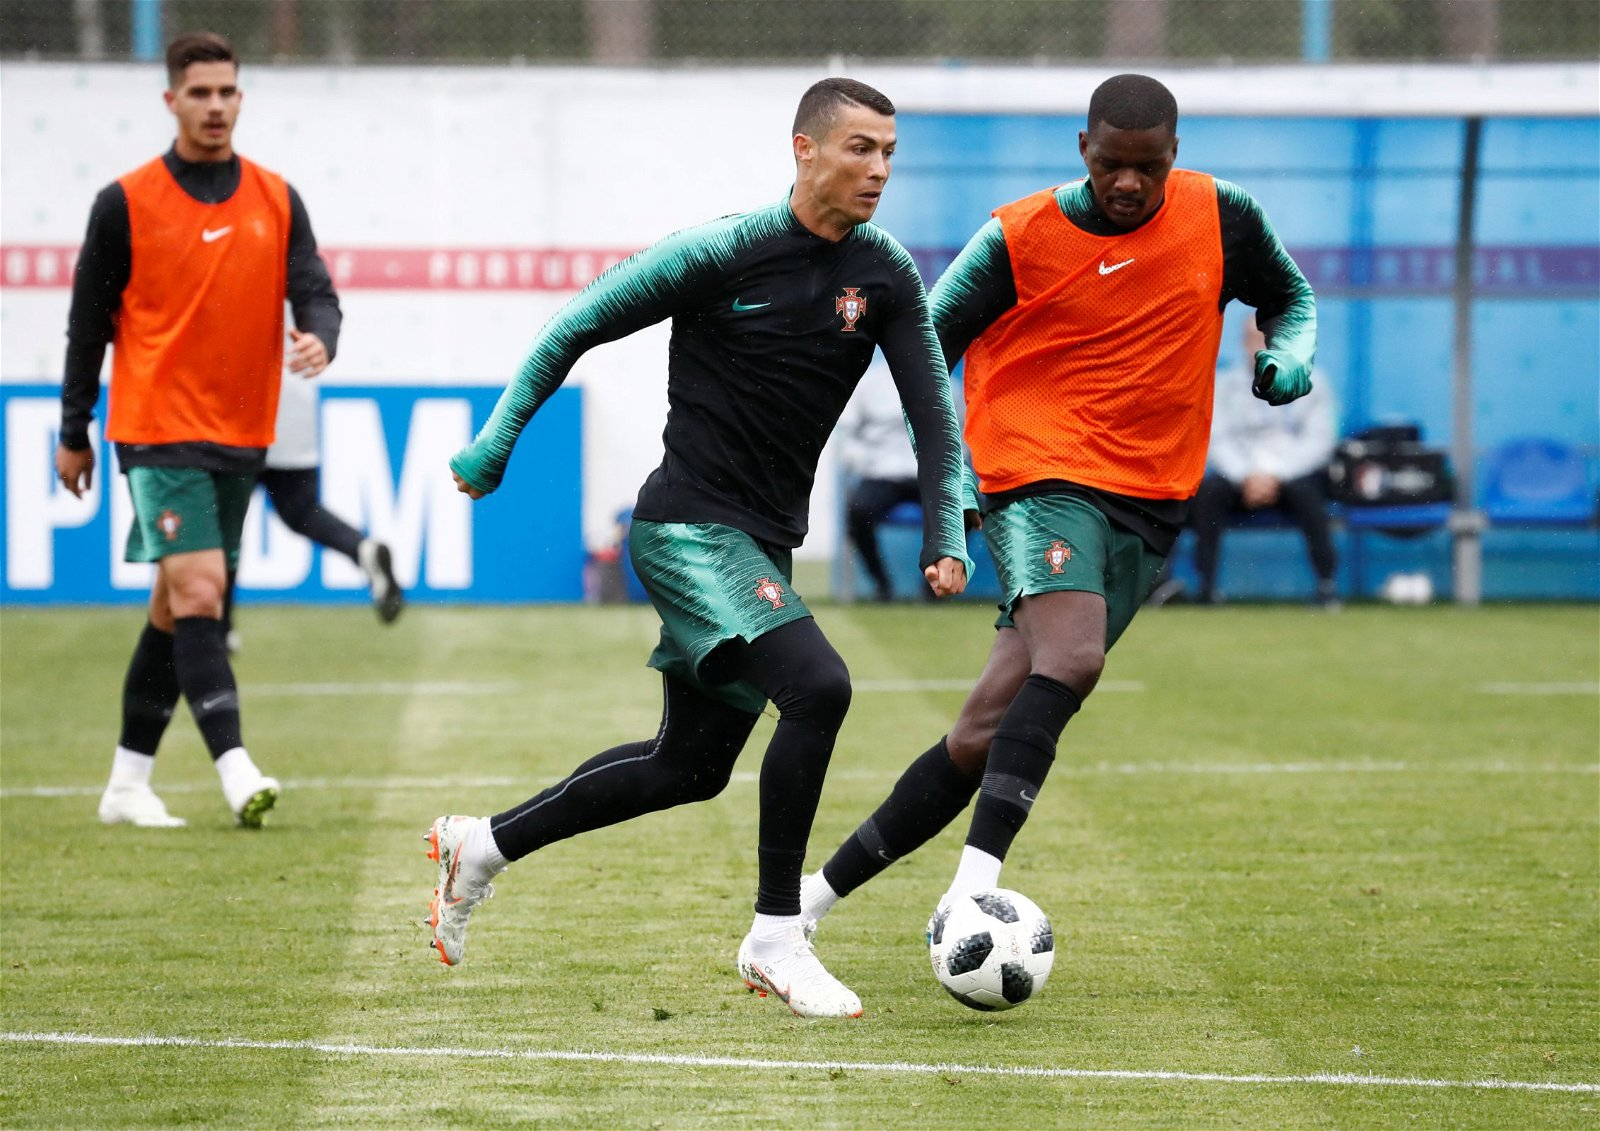 William Carvalho with Cristiano Ronaldo in Portugal international